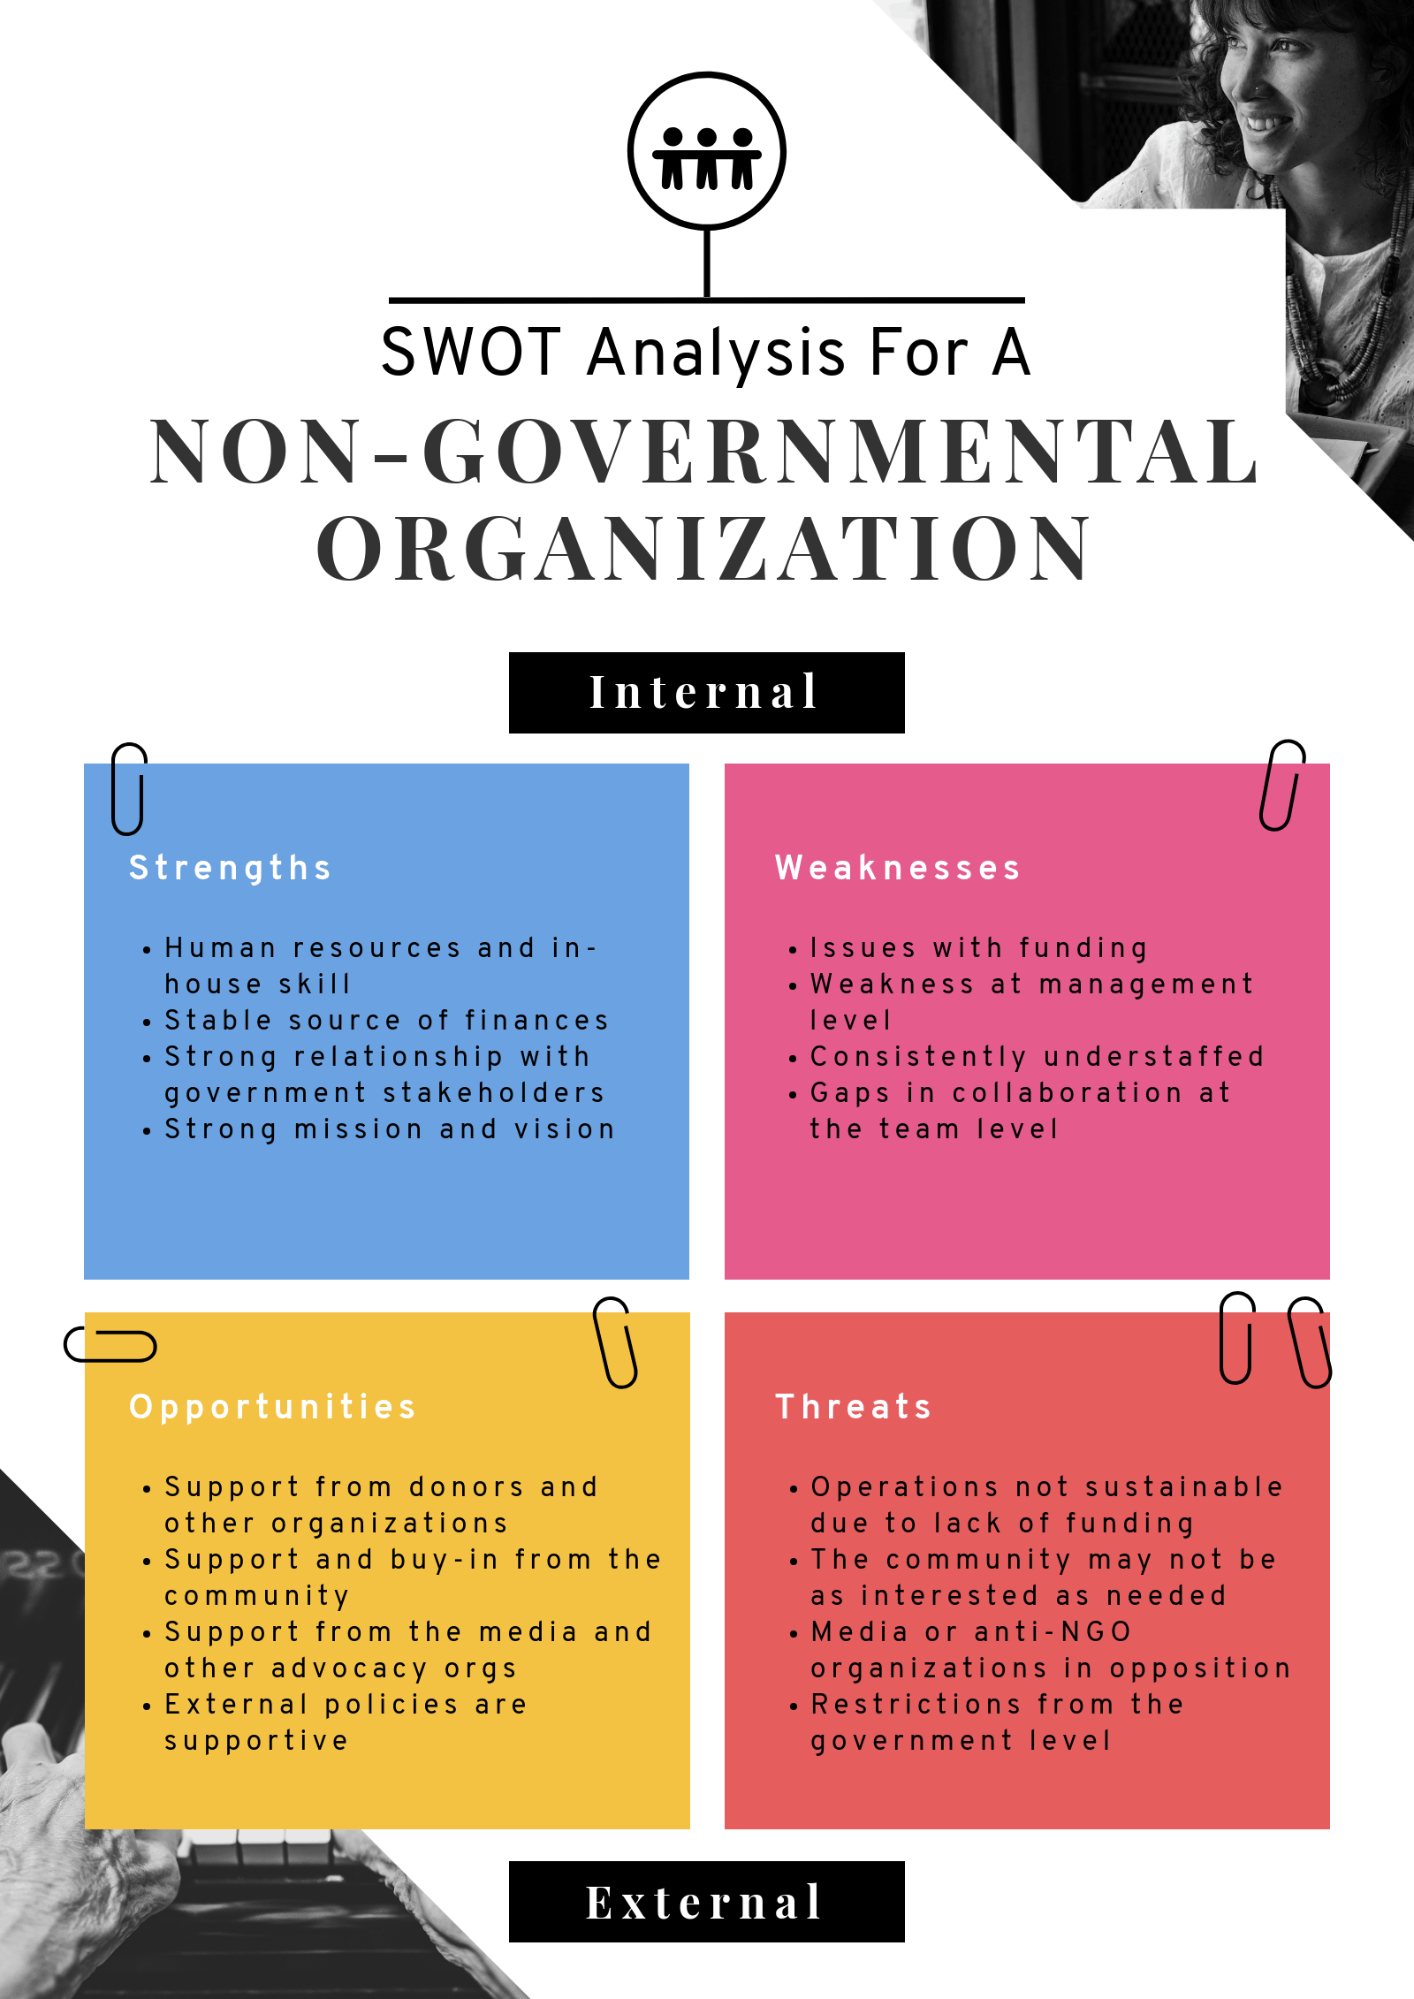 Swot Analysis: How To Structure And Visualize It   Piktochart Inside Strategic Analysis Report Template